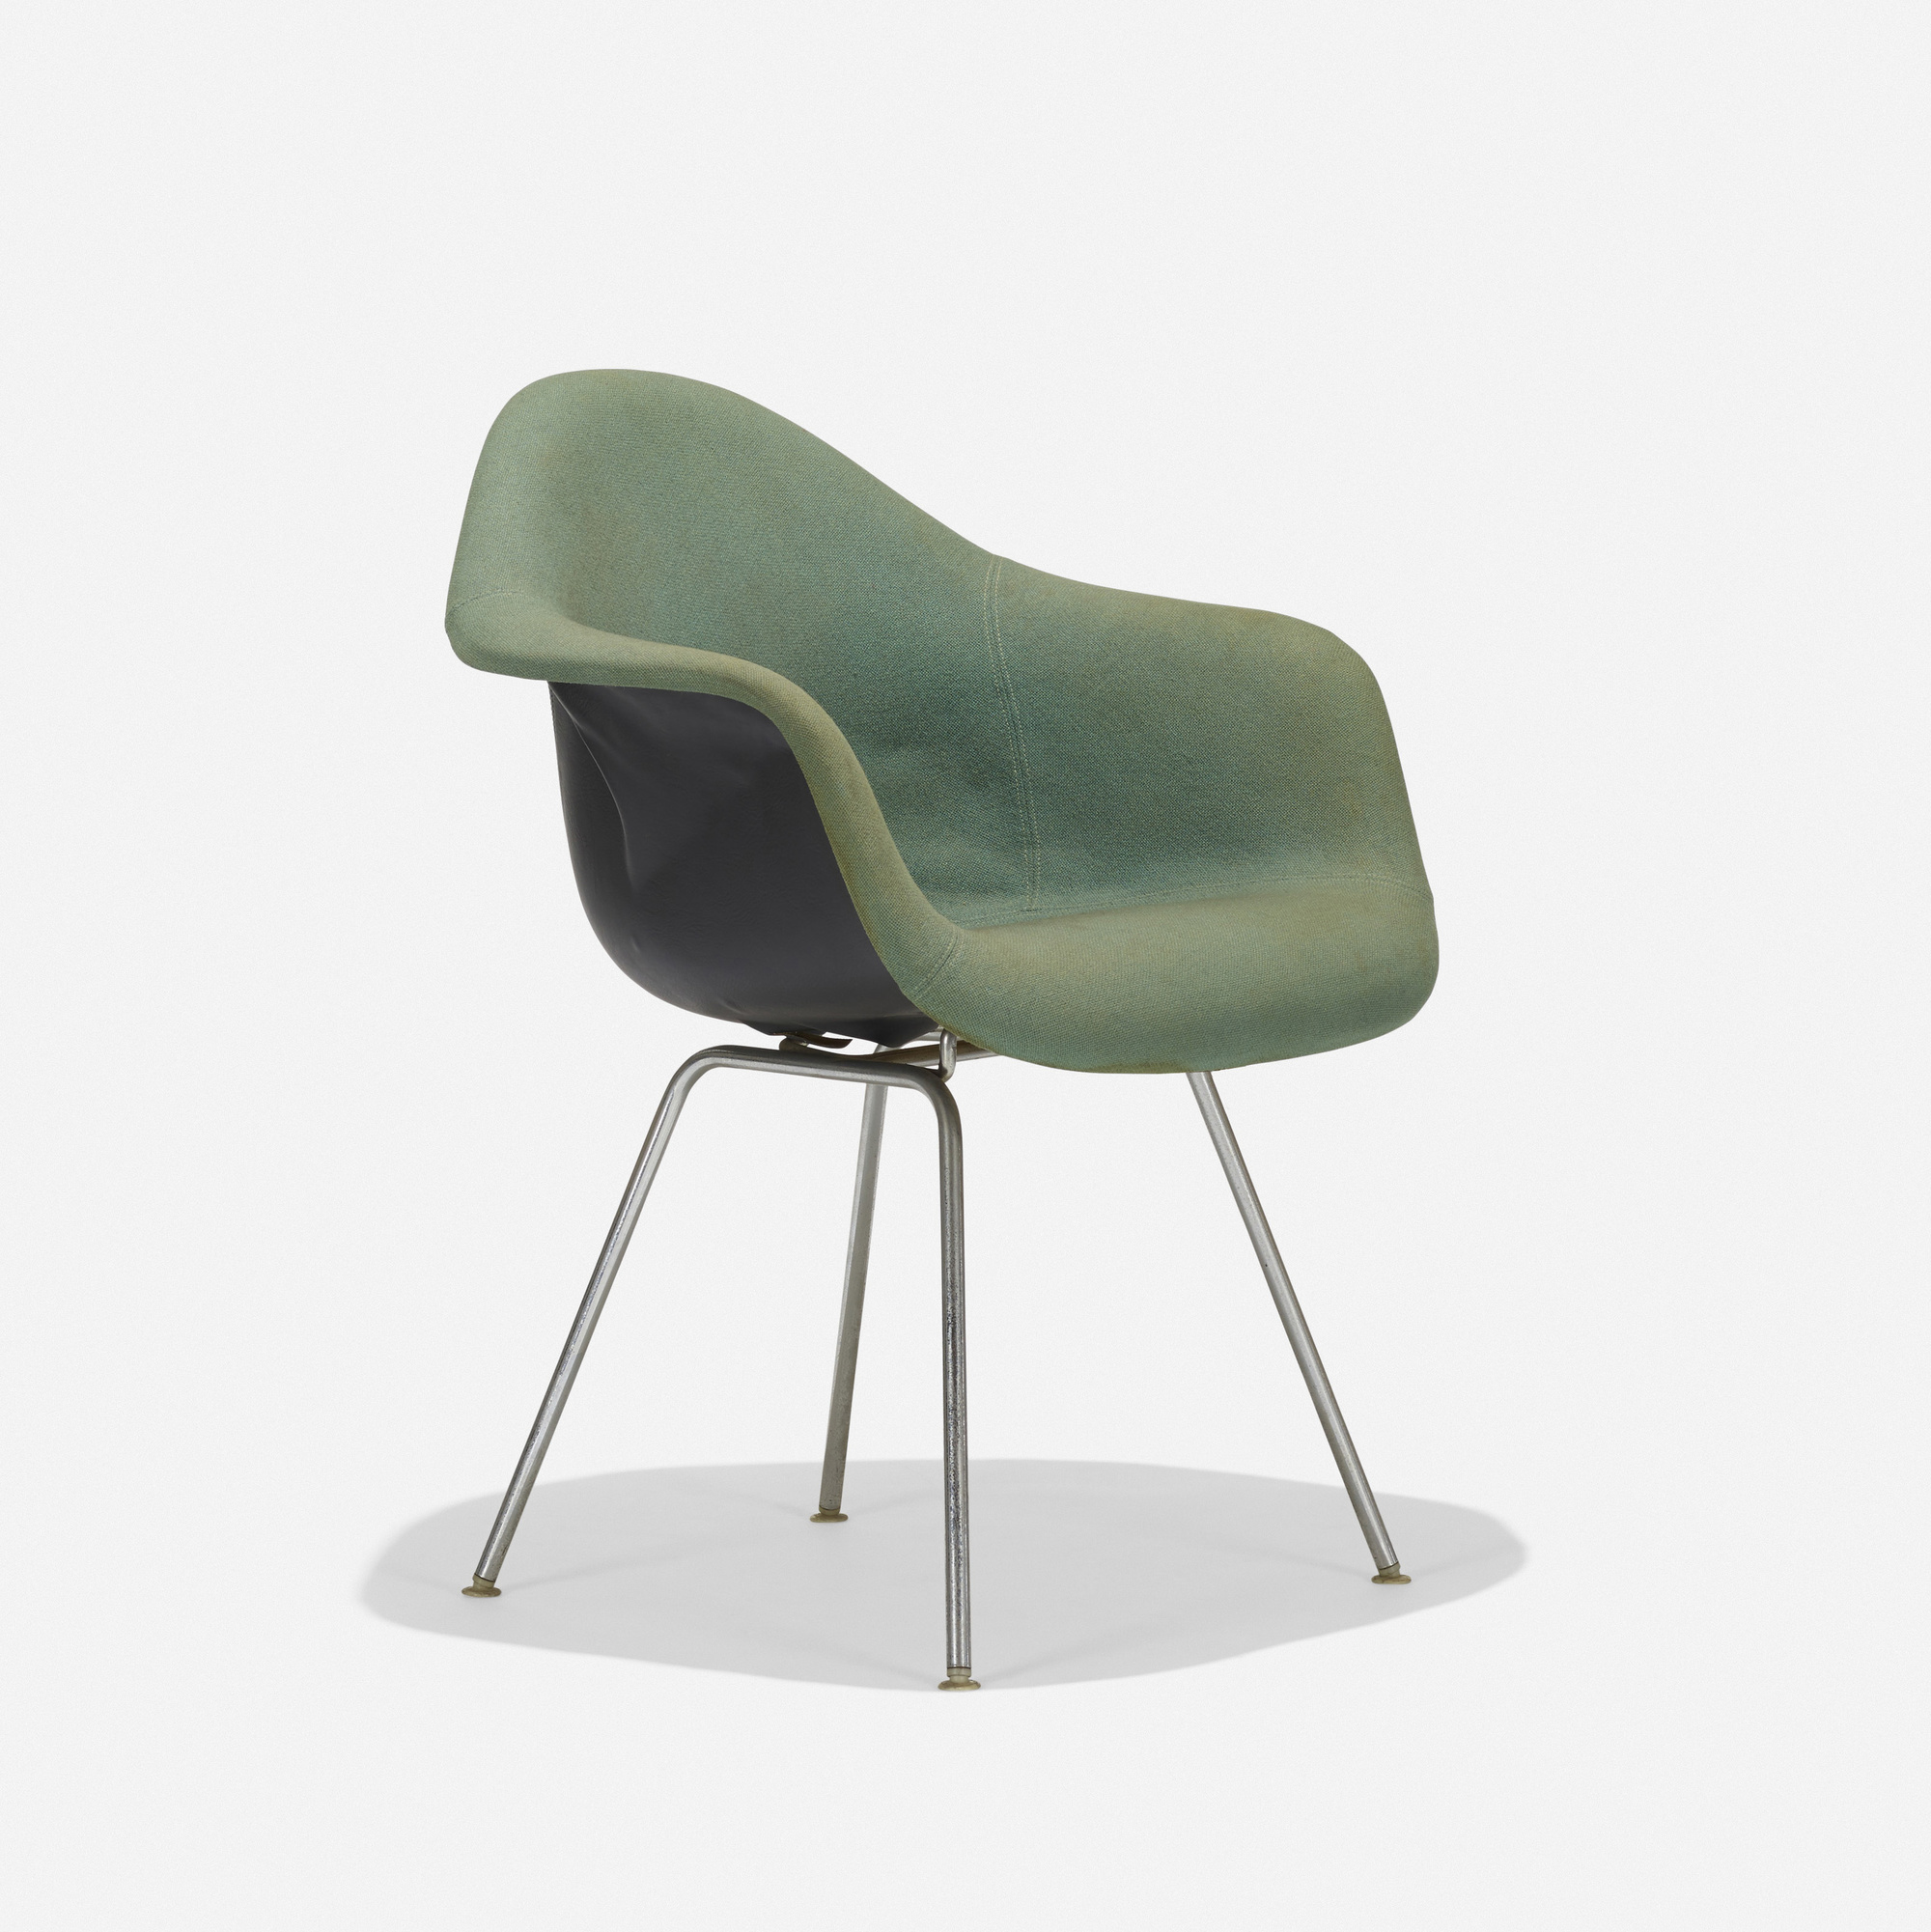 105: Charles and Ray Eames / DAX-1 (1 of 3)